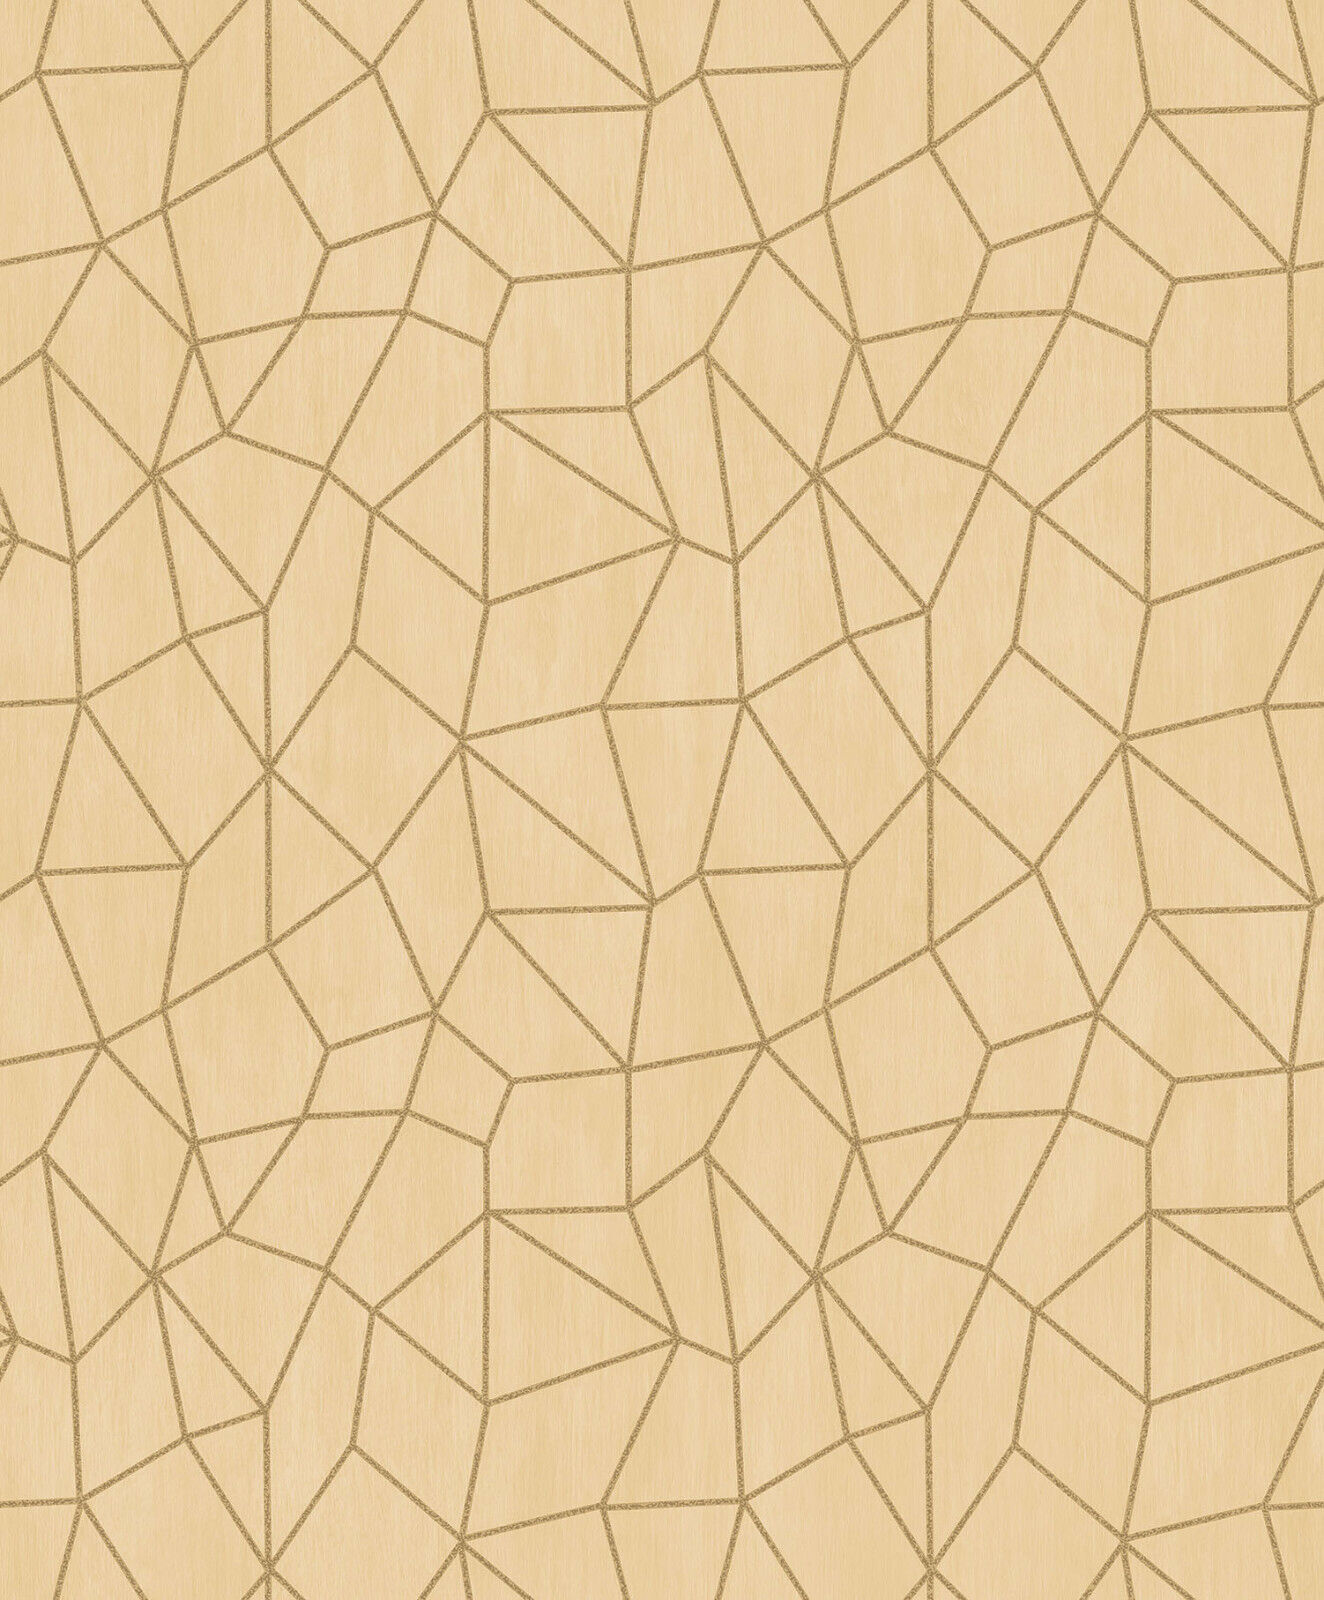 Essener Tapete Special Fx G67703 Network Mesh Look gold Vinyl Fleece Wallpaper